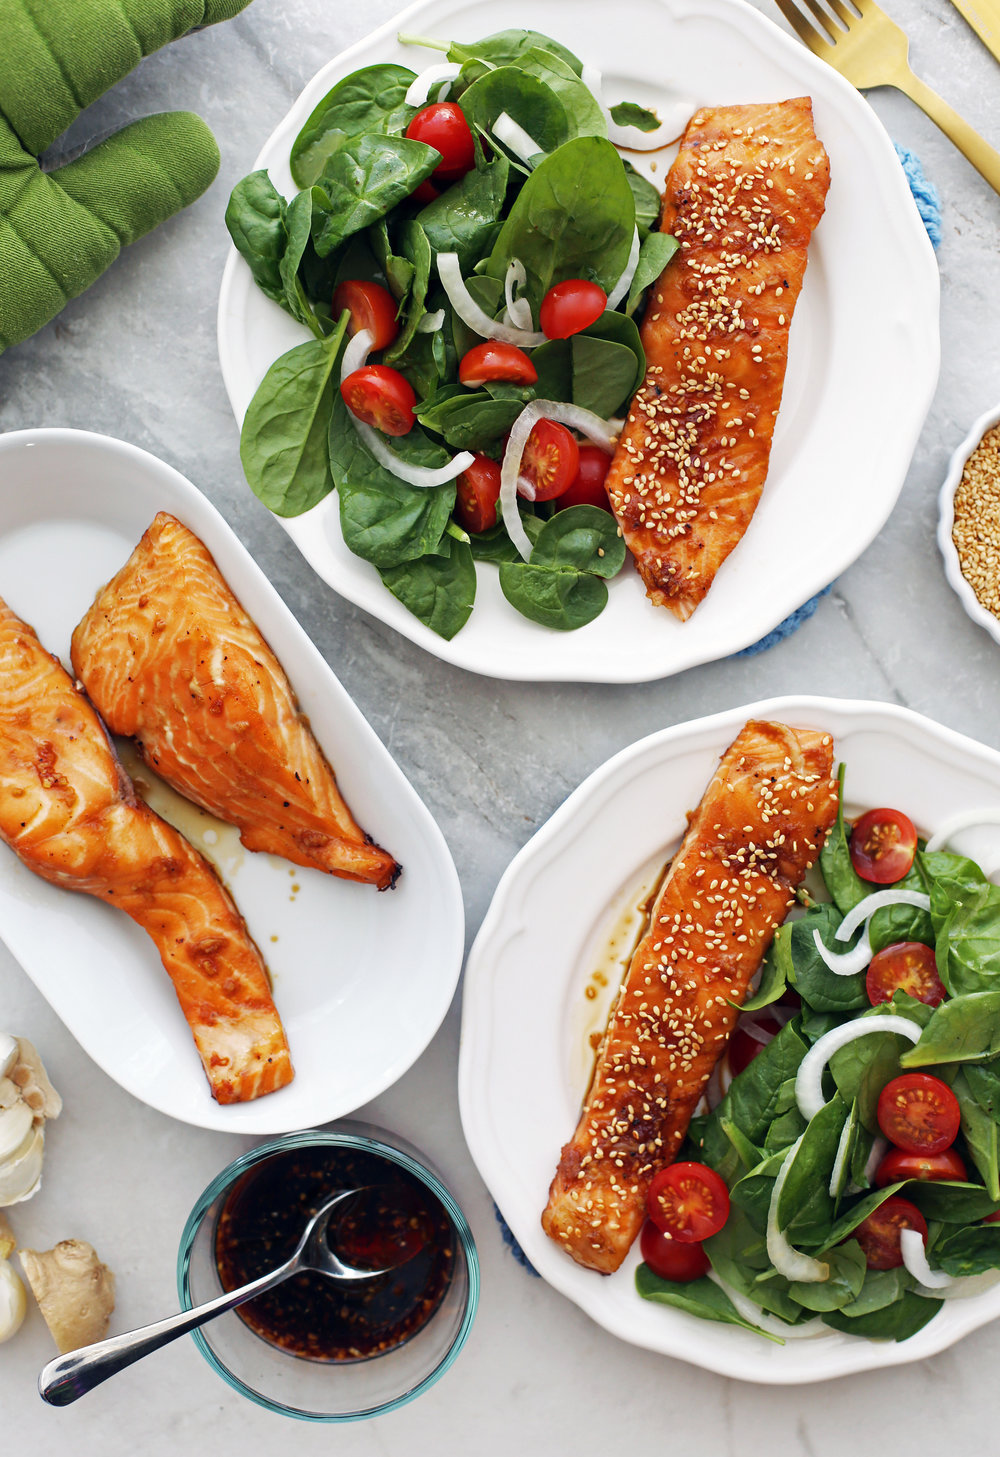 Overhead view of three white plates containing maple-soy baked salmon and spinach salad.